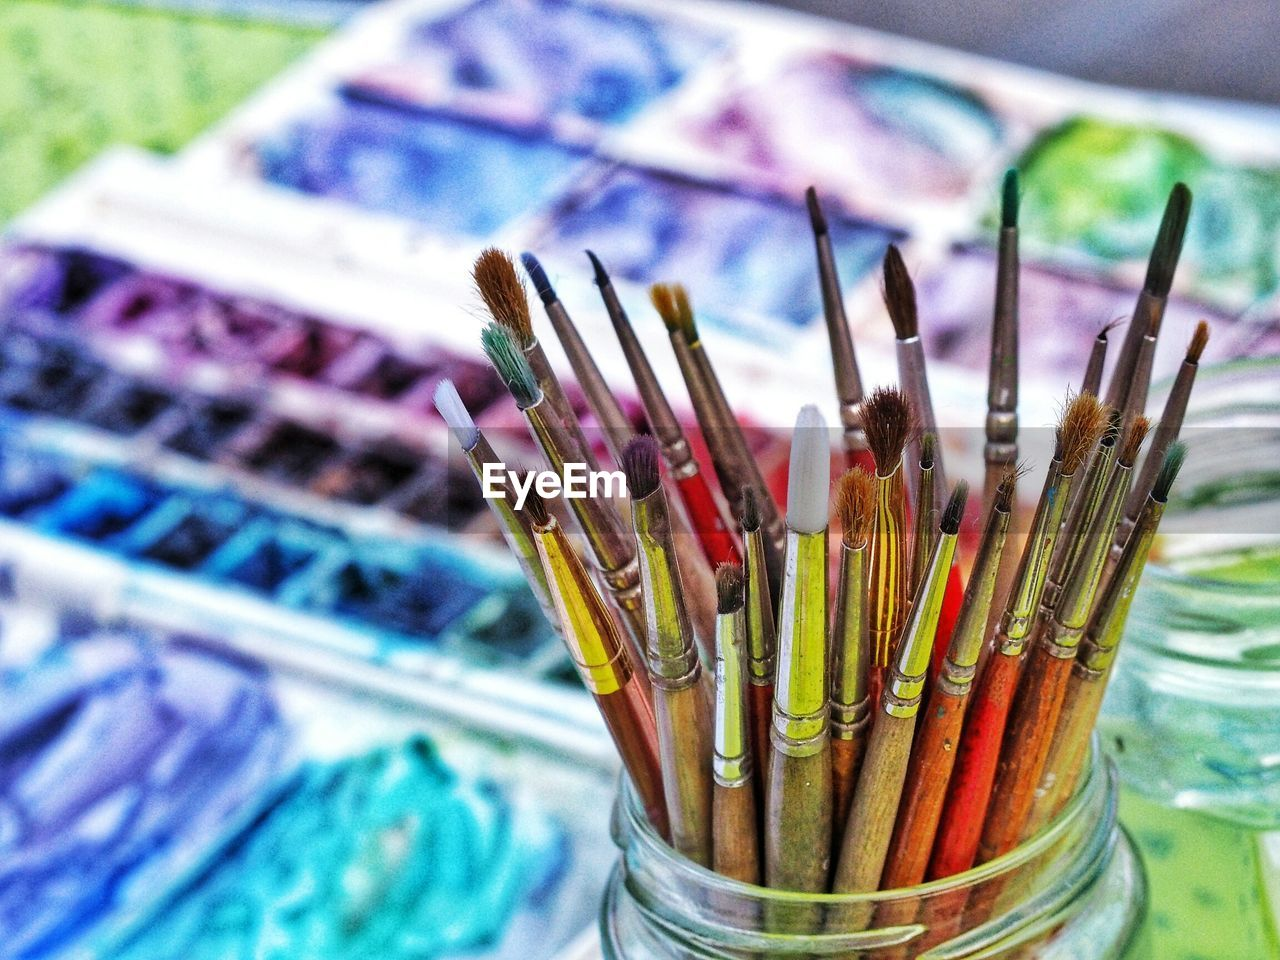 brush, large group of objects, paintbrush, multi colored, choice, variation, art and craft, still life, container, no people, indoors, close-up, focus on foreground, craft, creativity, paint, high angle view, art and craft equipment, abundance, selective focus